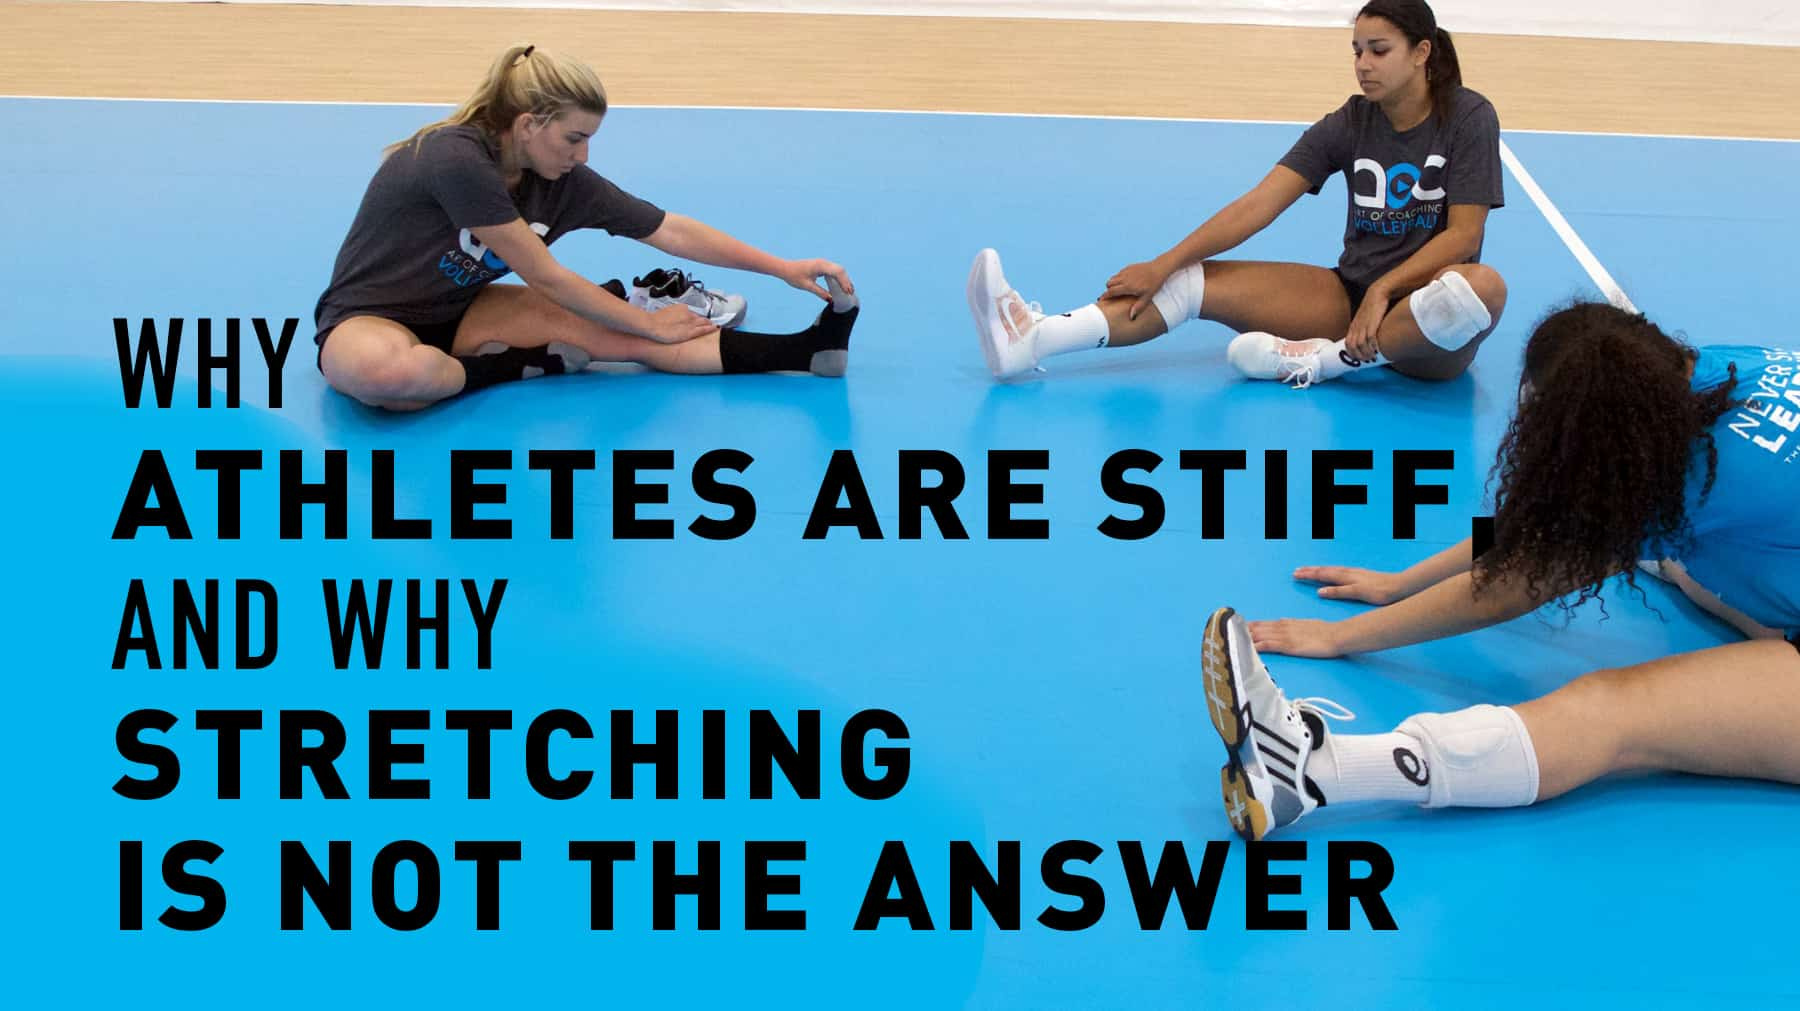 Why Athletes Are Stiff And Why Stretching Is Not The